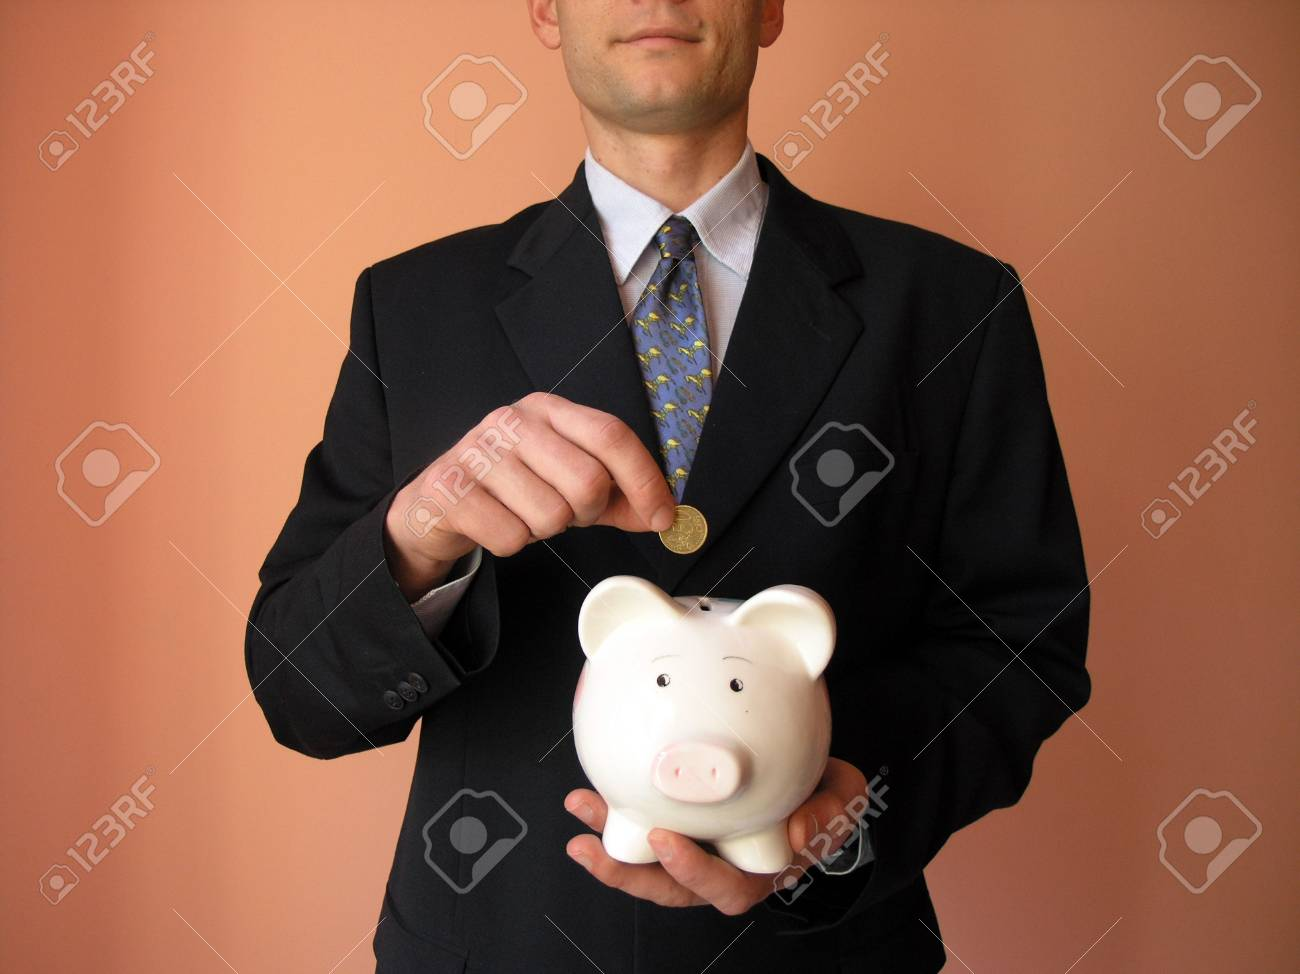 Businessman with a piggy bank.He puts coin in a piggy bank. Stock Photo - 2638763